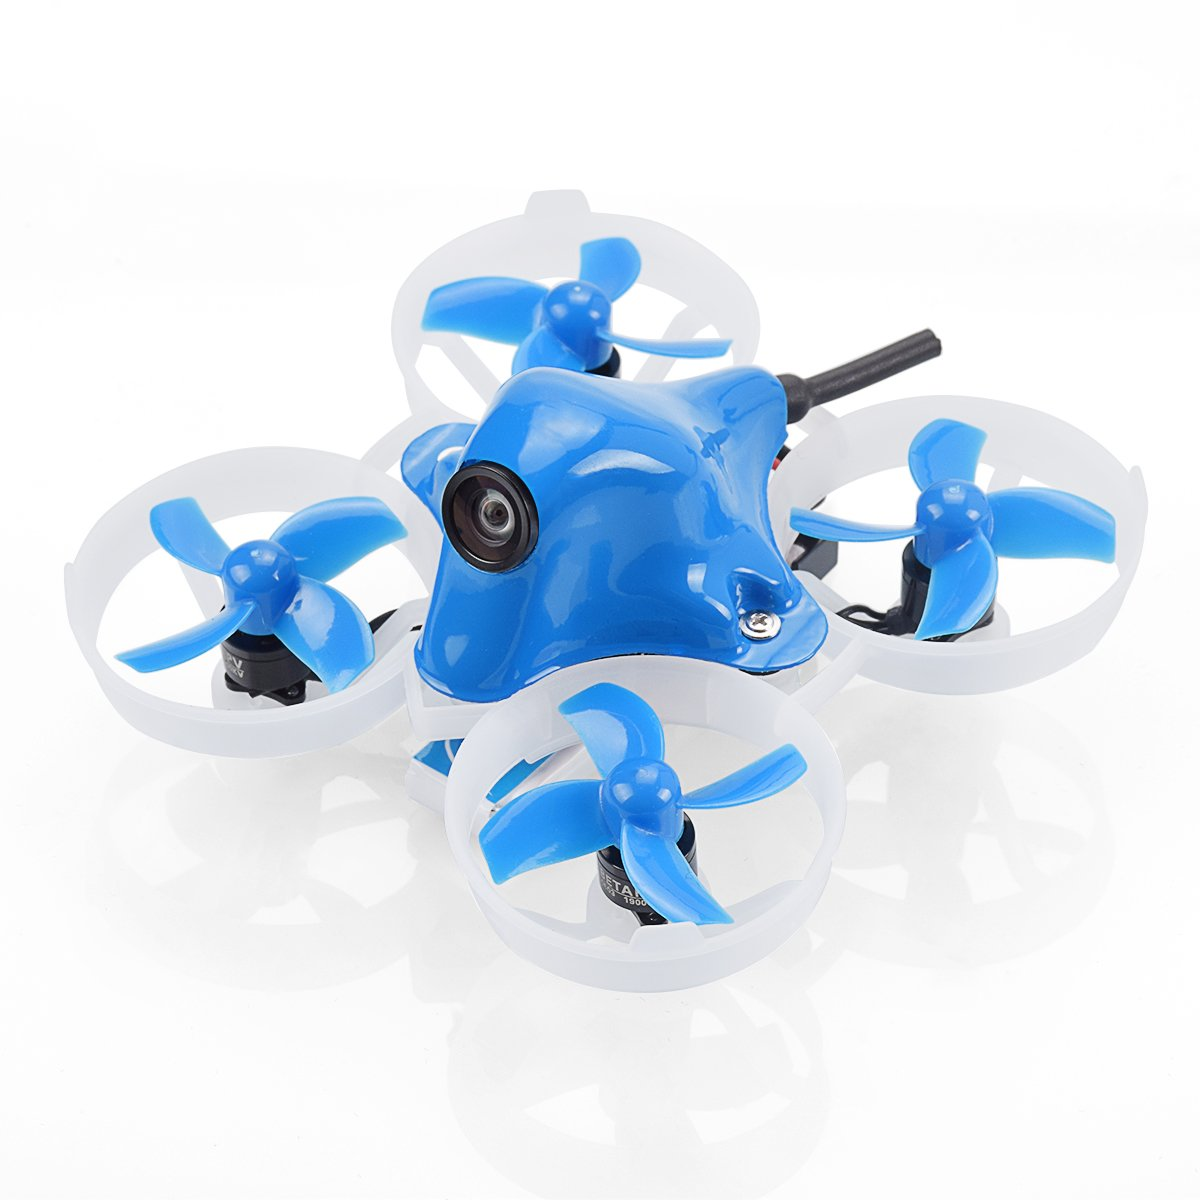 Beta65PRO Brusheless BNF Whoop Quadcopter S-FHSS受信機+OSD付 完成機